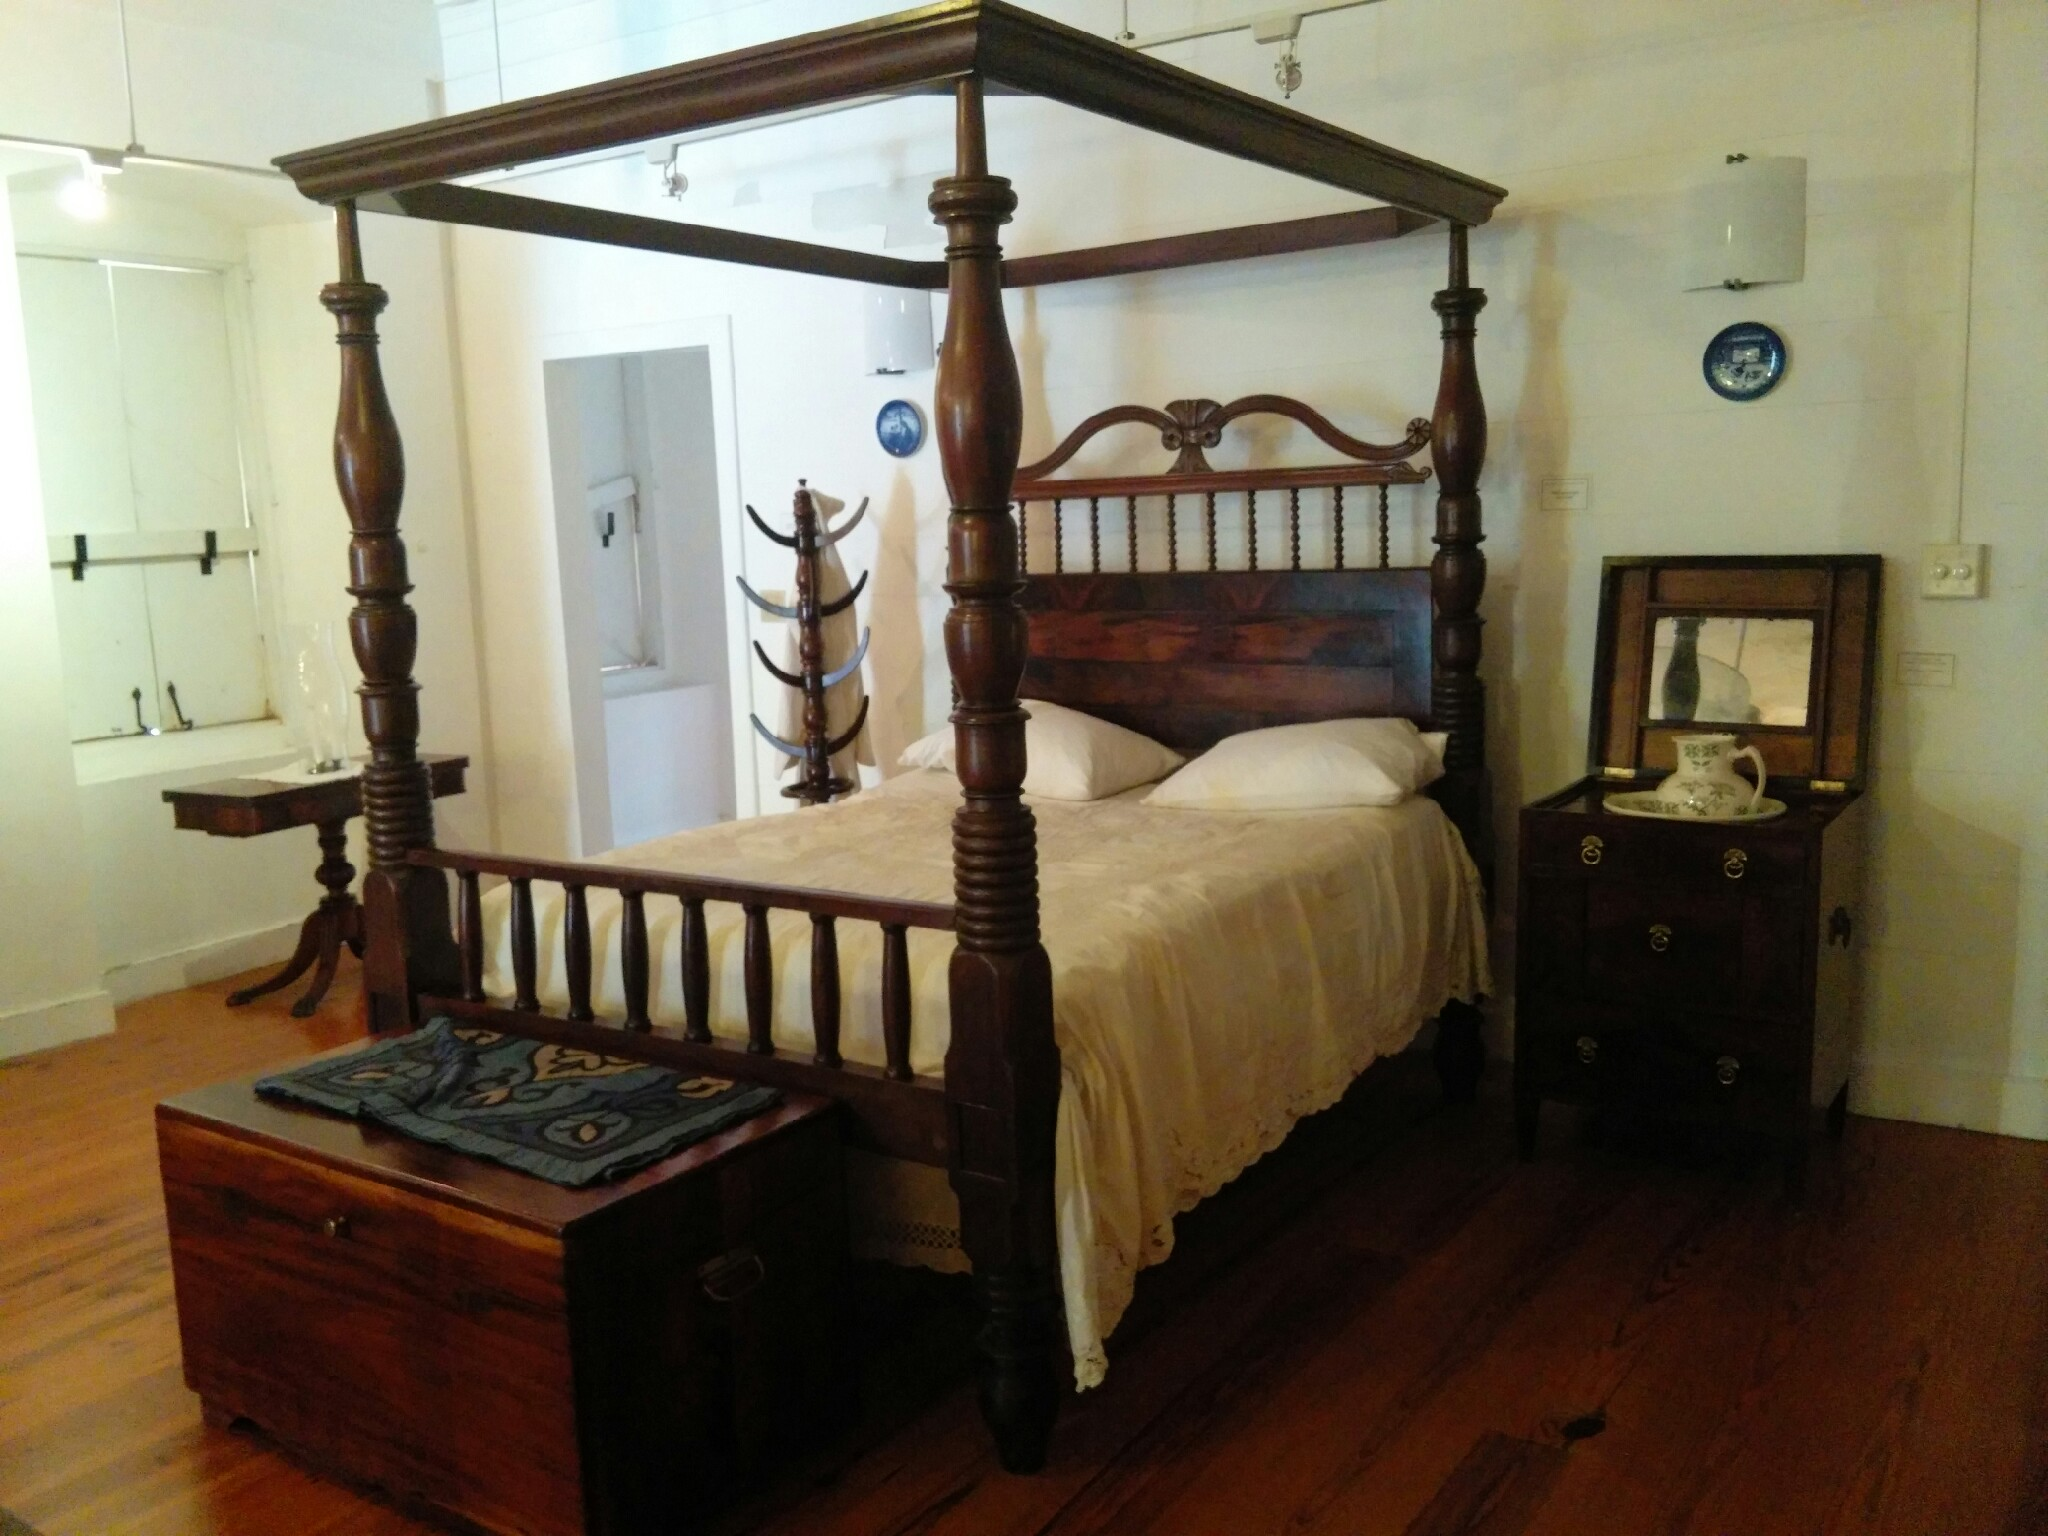 Crucian 4-Poster Mahogany Bed.jpg & The Antique Mahogany Four-Poster Beds of the U.S. Virgin Islands ...